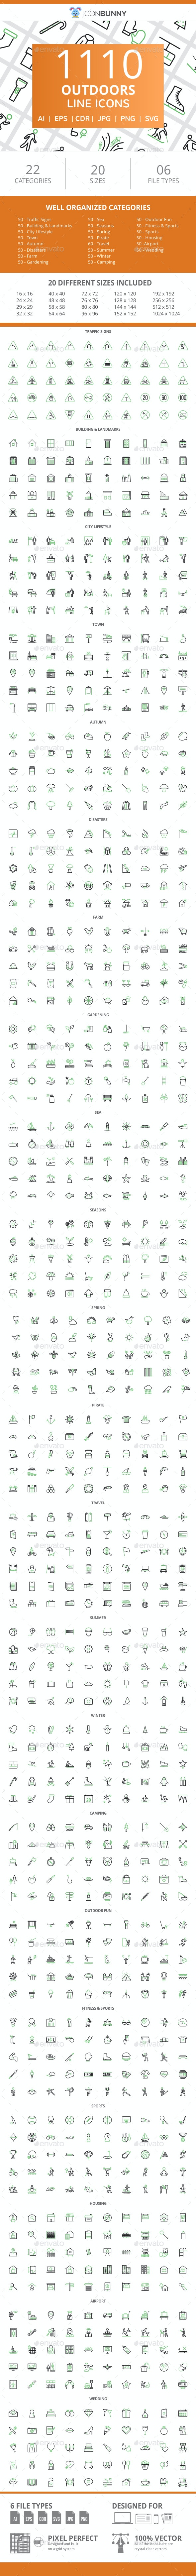 1110 Outdoors Line Green & Black Icons - Icons